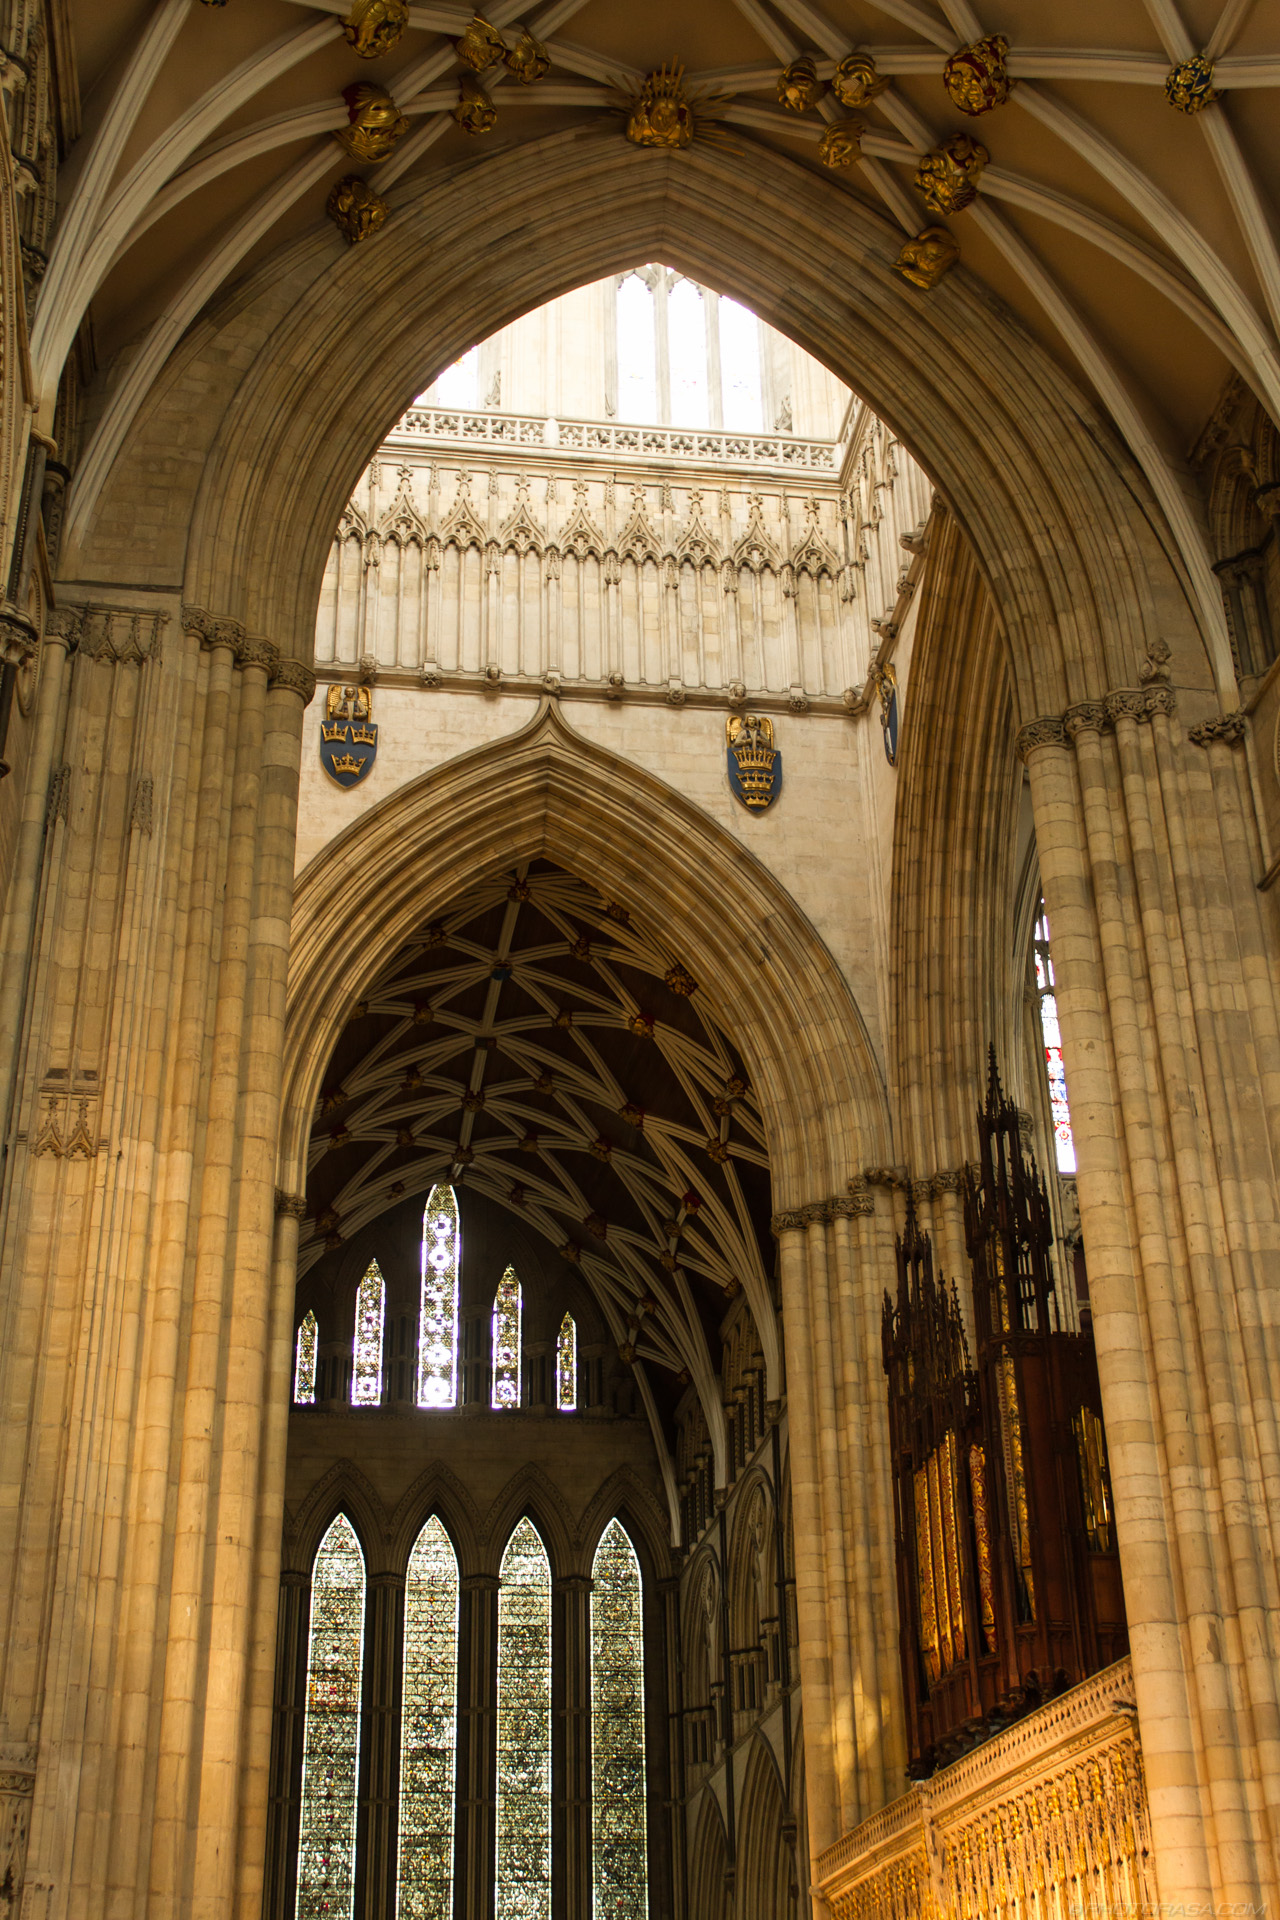 http://photorasa.com/places/yorkminster-cathedral/attachment/light-coming-down-from-central-tower/